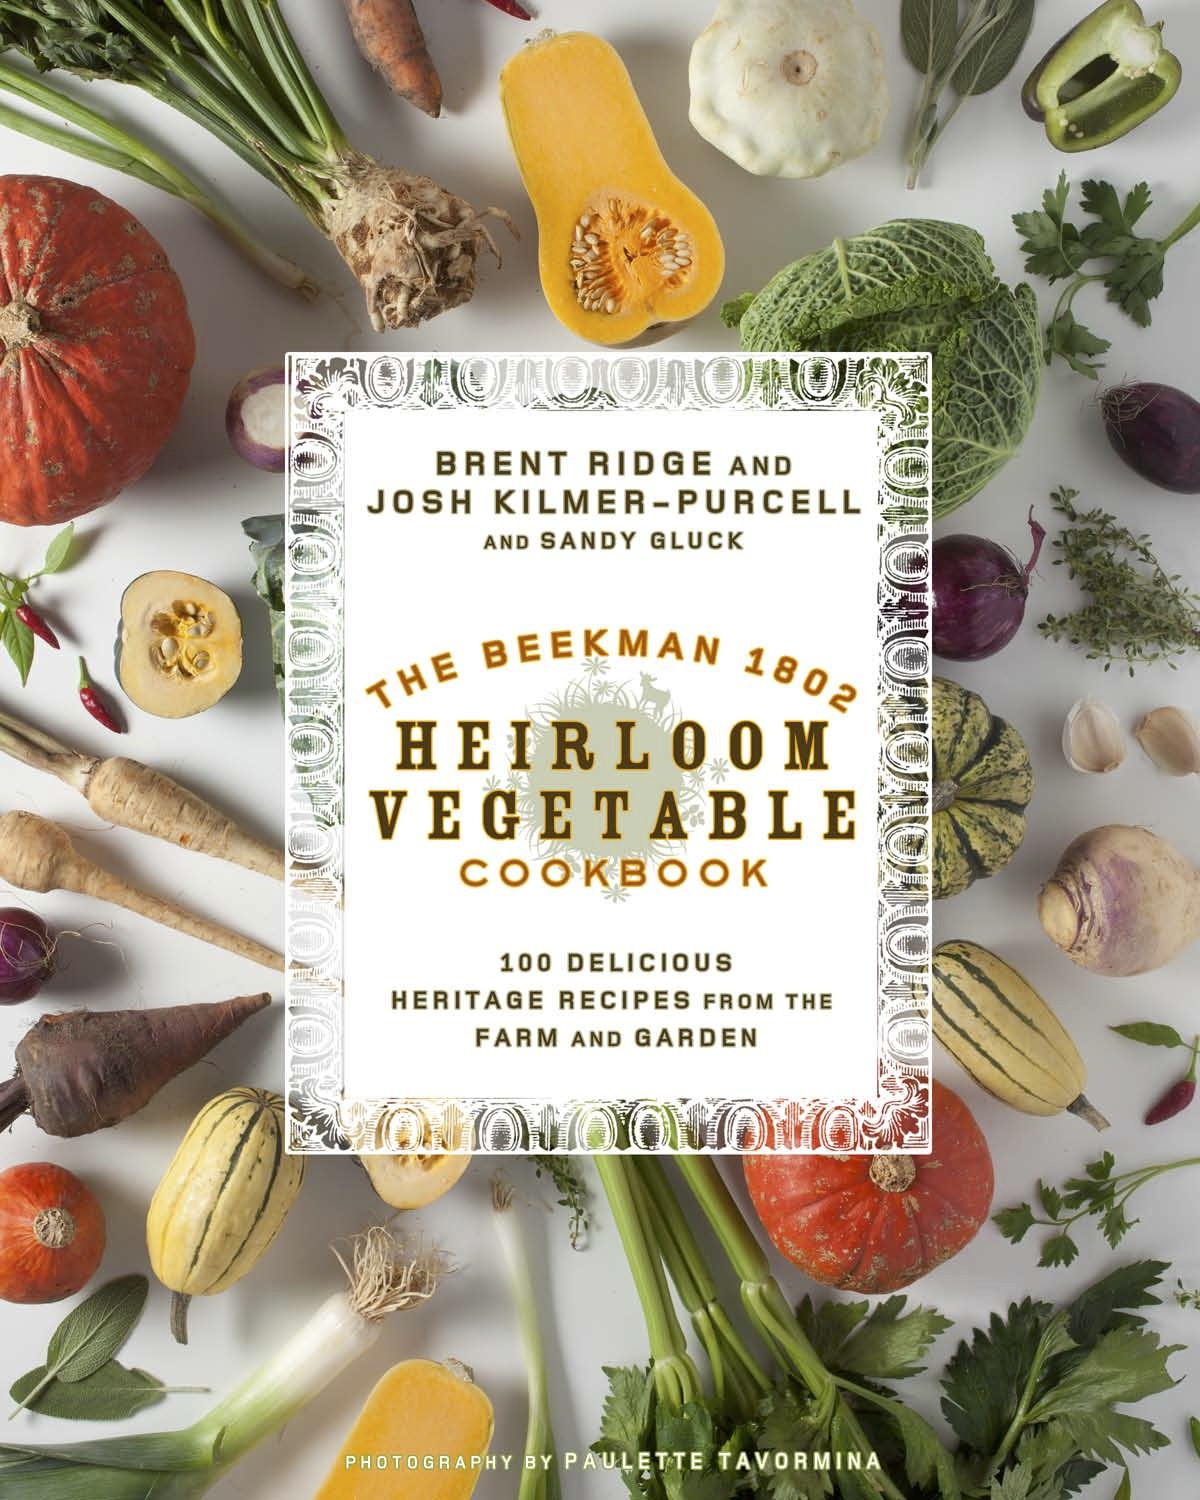 Beekman 1802 Heirloom Vegetable Cookbook